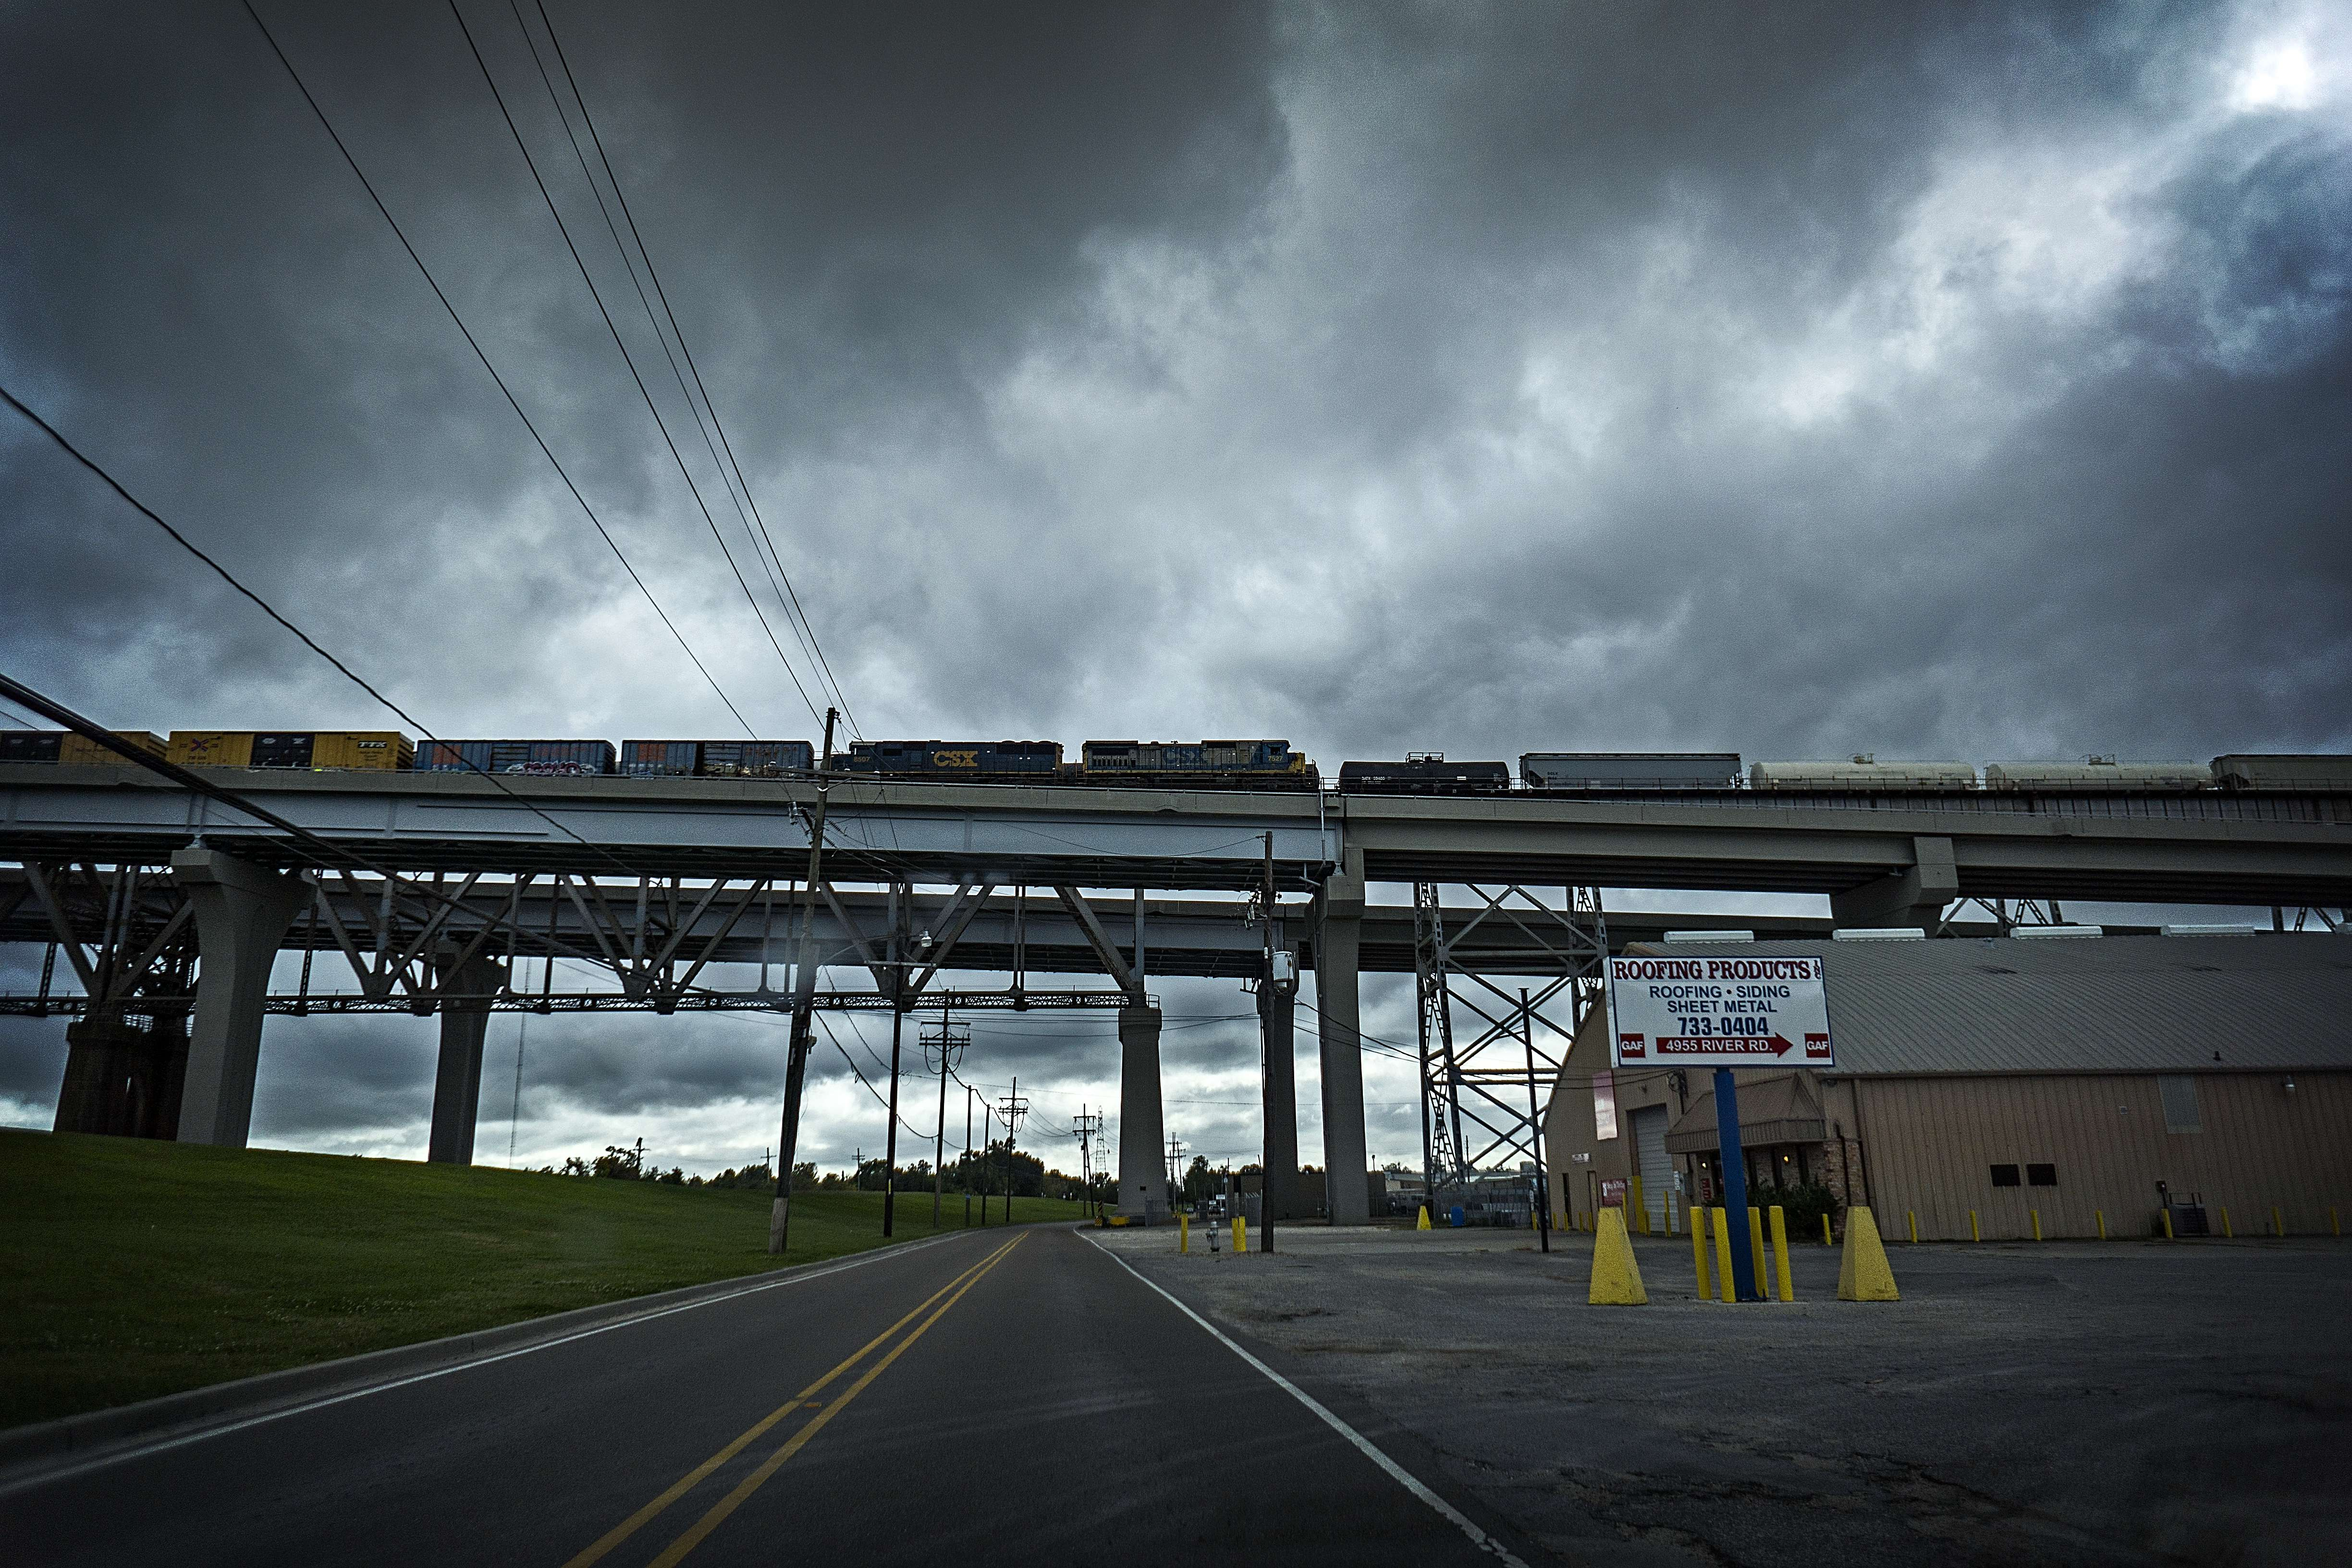 Trains crossing The Mississippi River over The Huey P. Long Bridge near Harahan, LA.